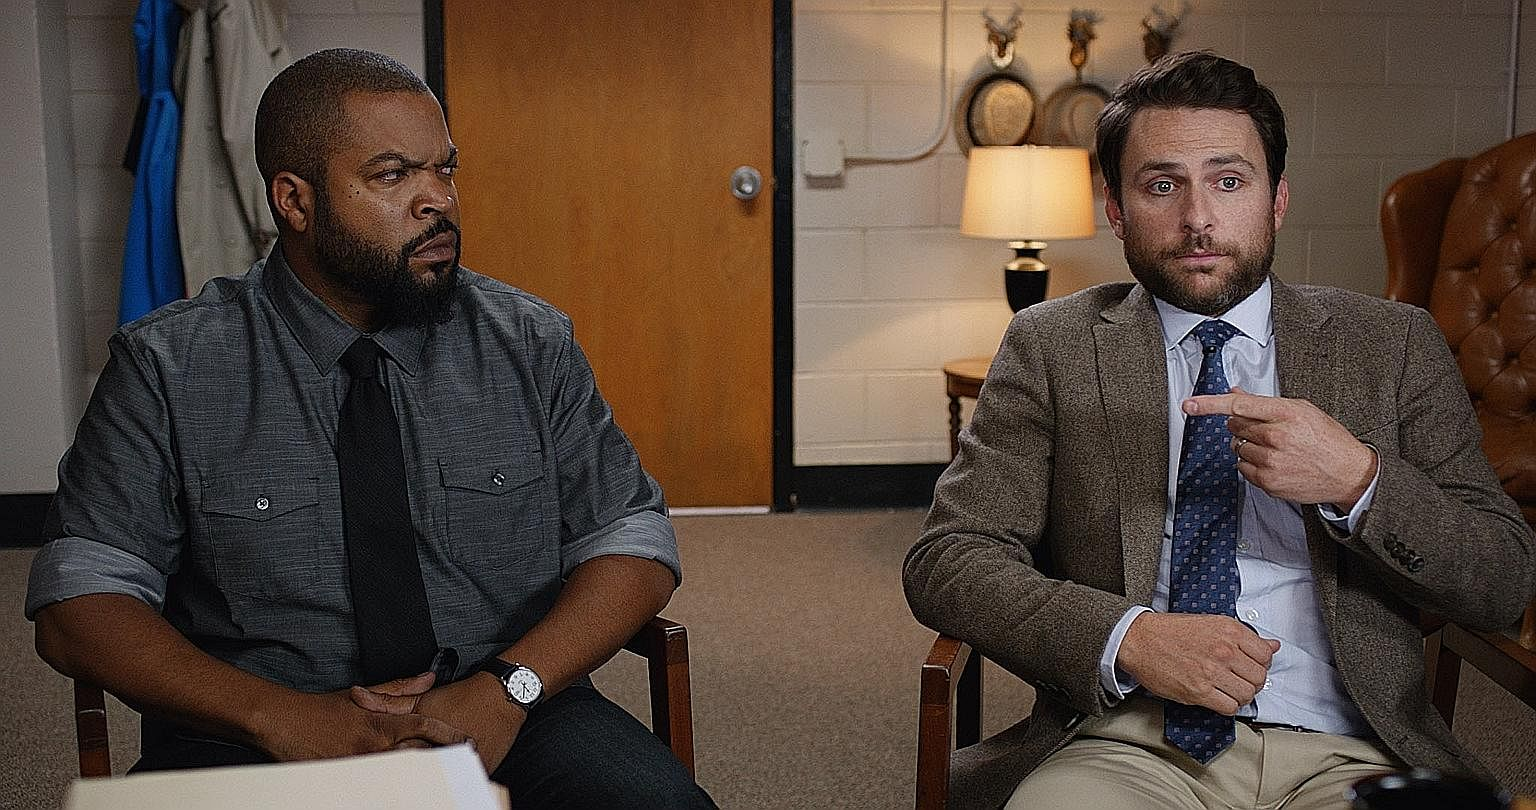 Ice Cube (left) and Charlie Day (right) are teachers locked in a feud in Fist Fight.